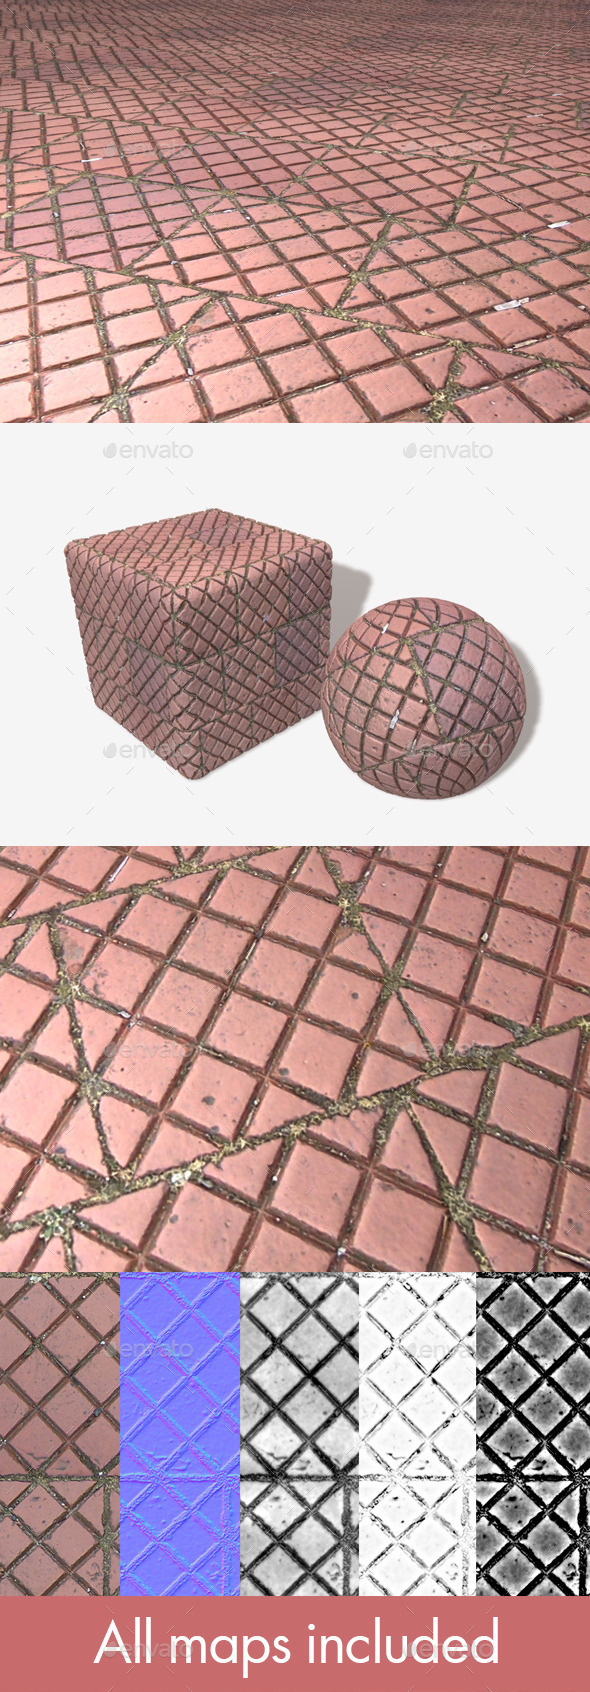 Pavement Patterned Tile Seamless Texture - 3DOcean Item for Sale